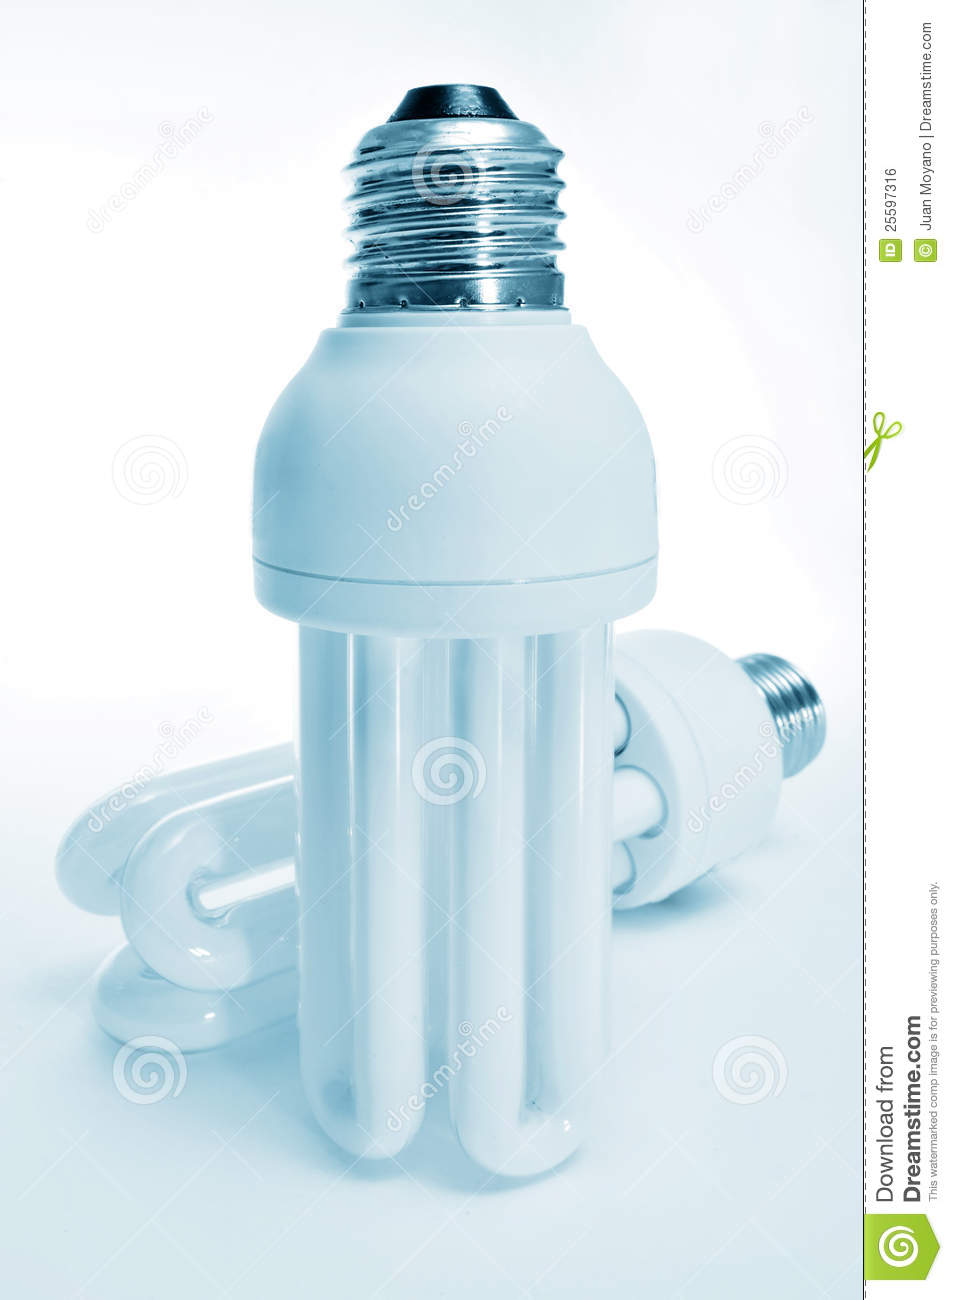 Energy-saving lights